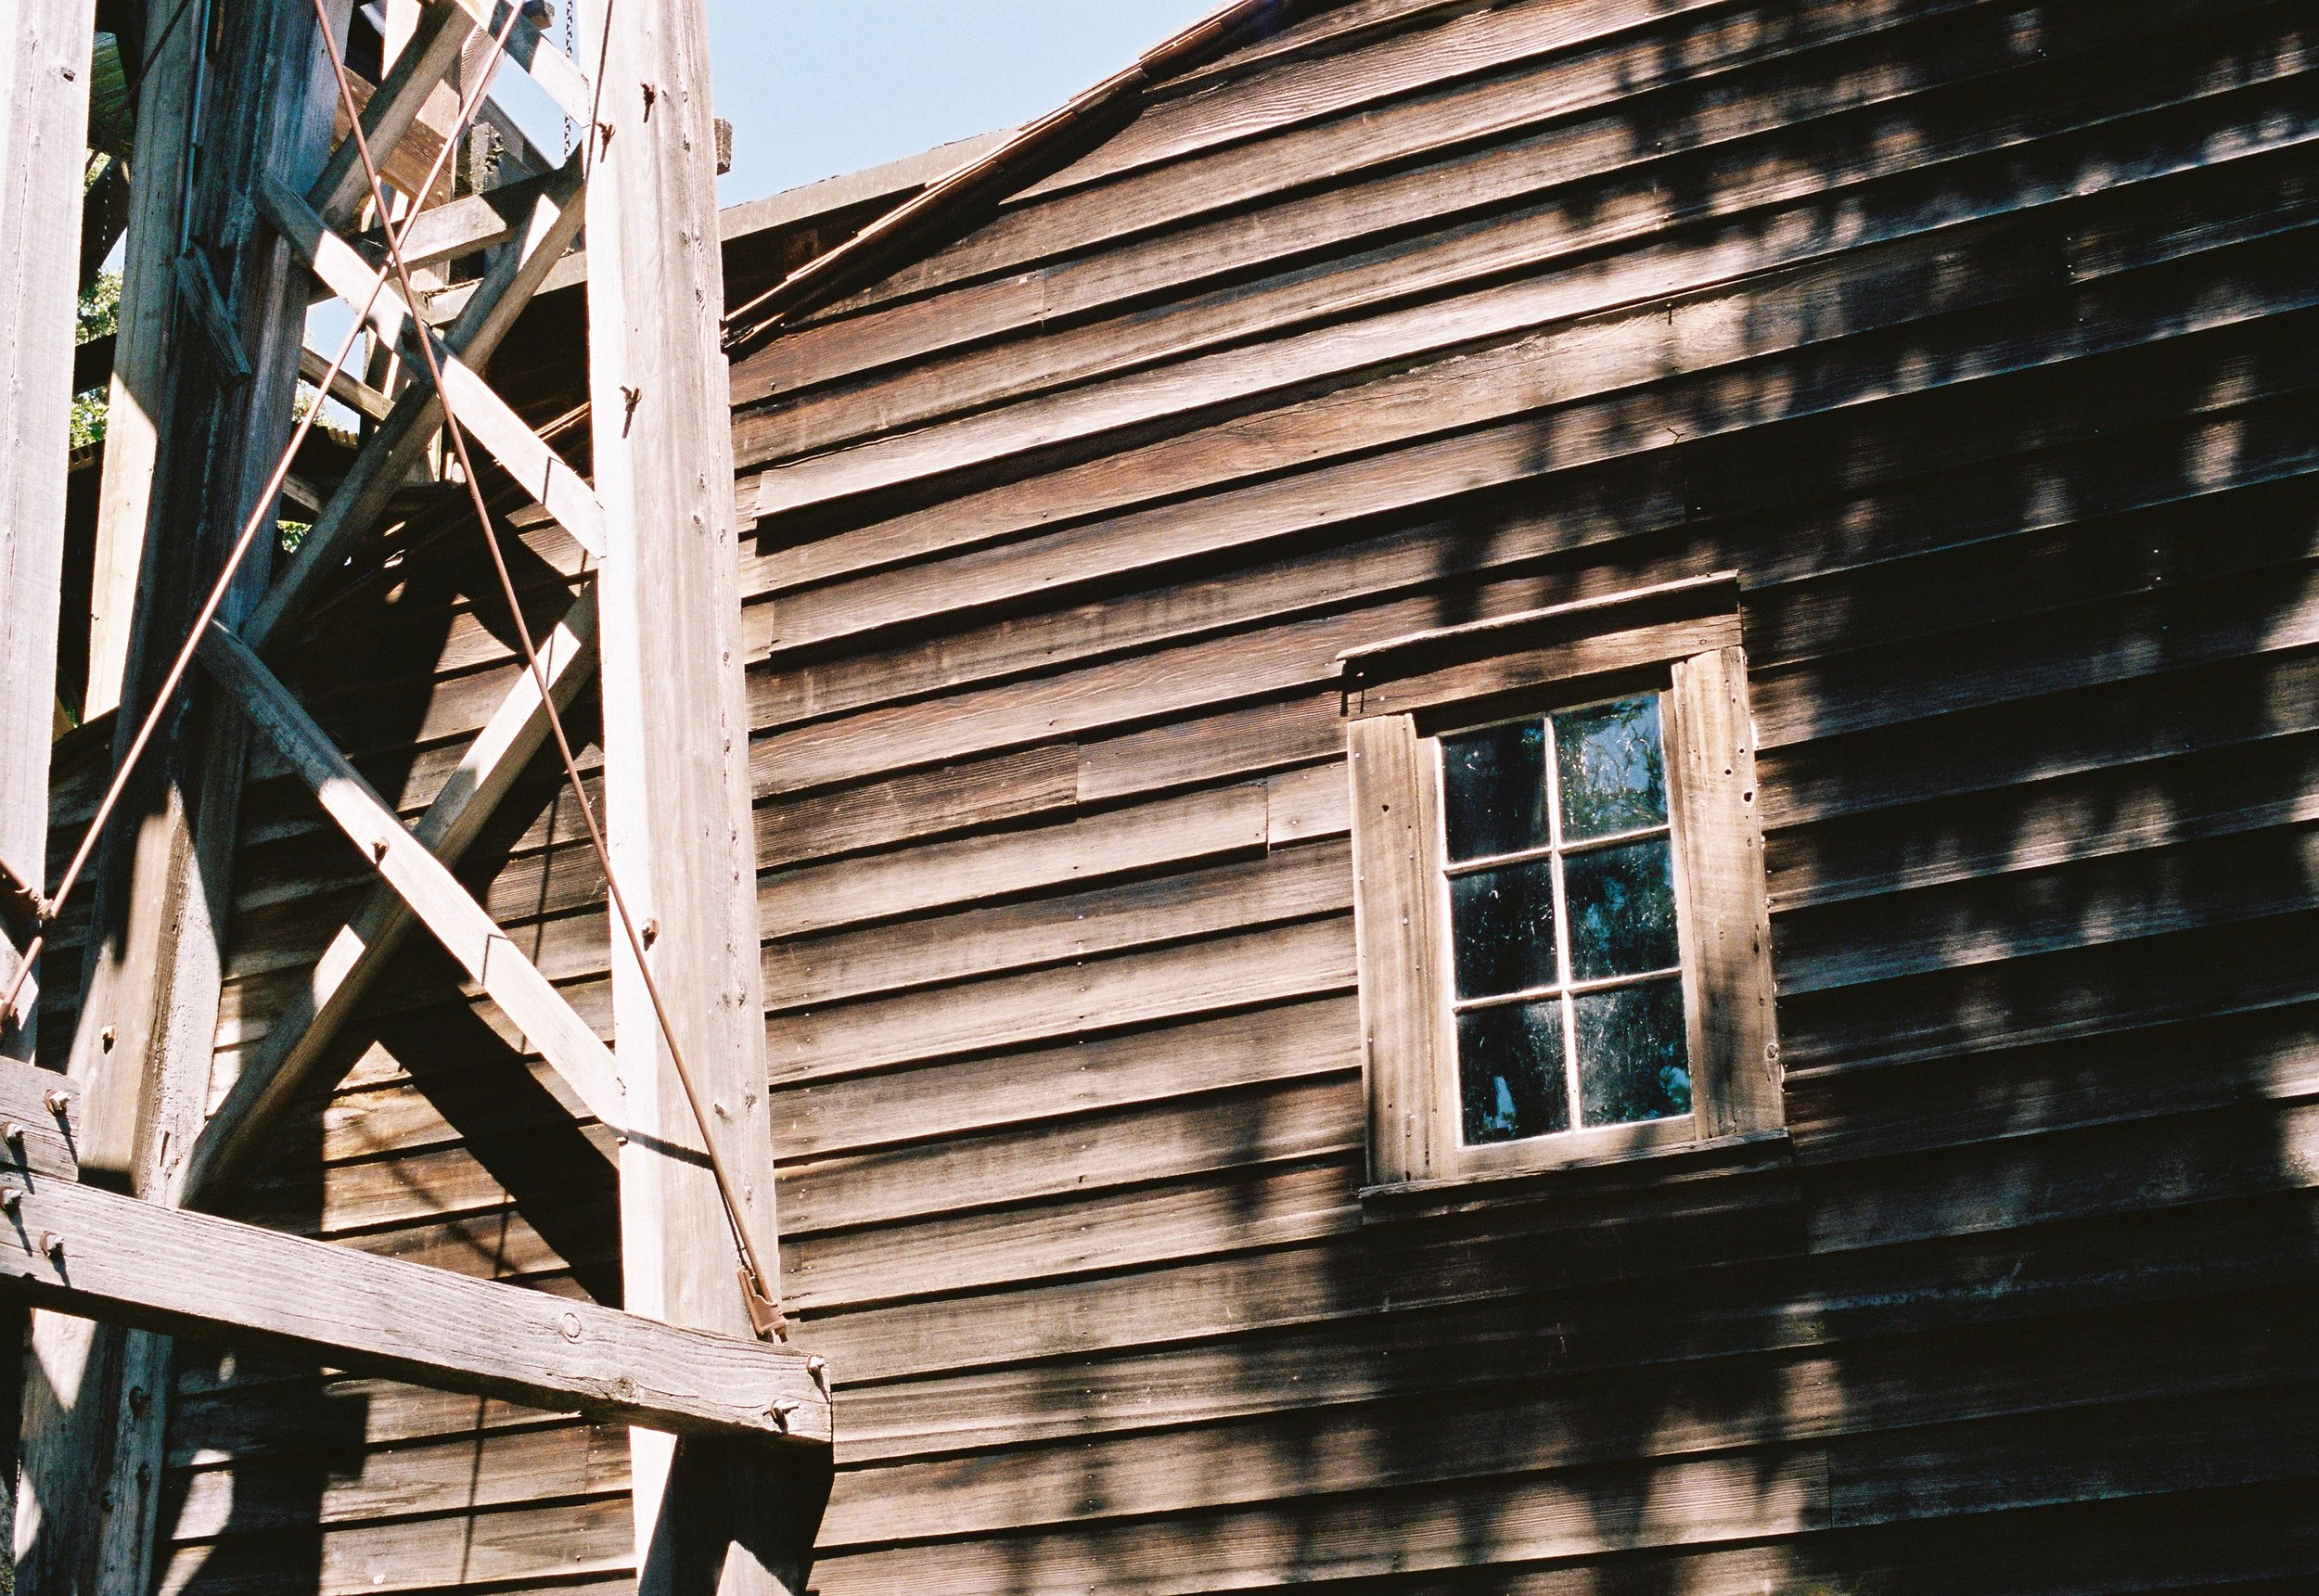 The Bale Grist Mill in Napa Valley